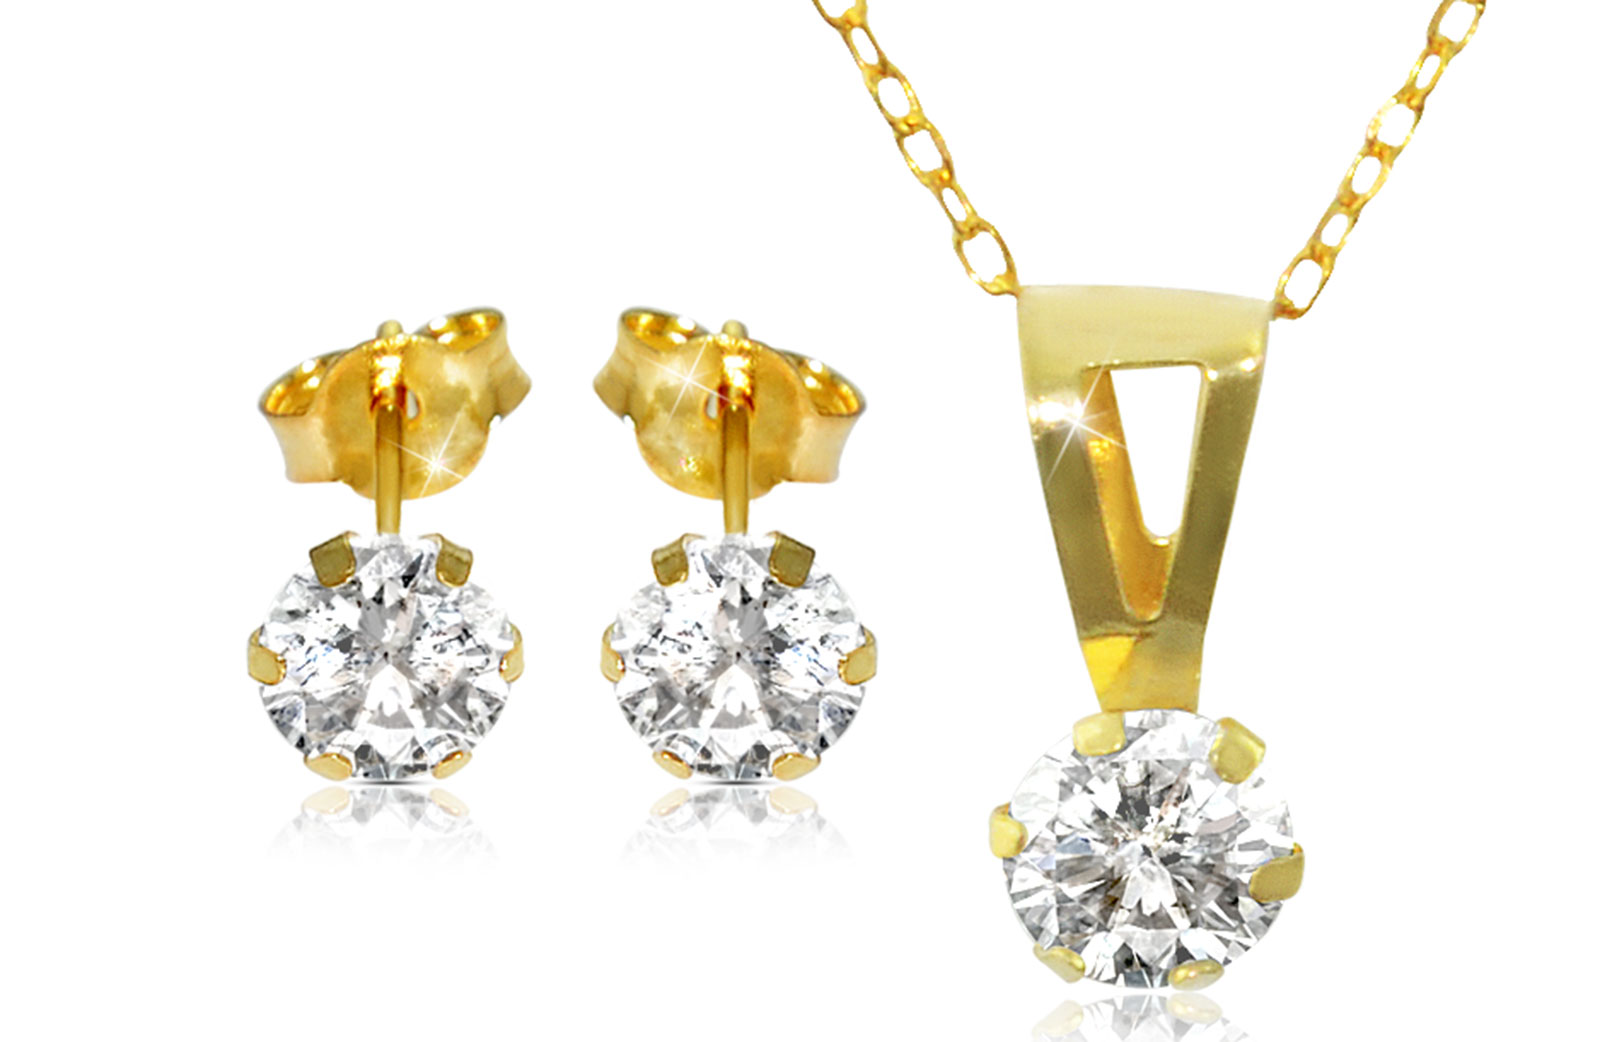 Vera Perla 18K Solid Gold and Cubic Zircon Solitaire Necklace and Earrings